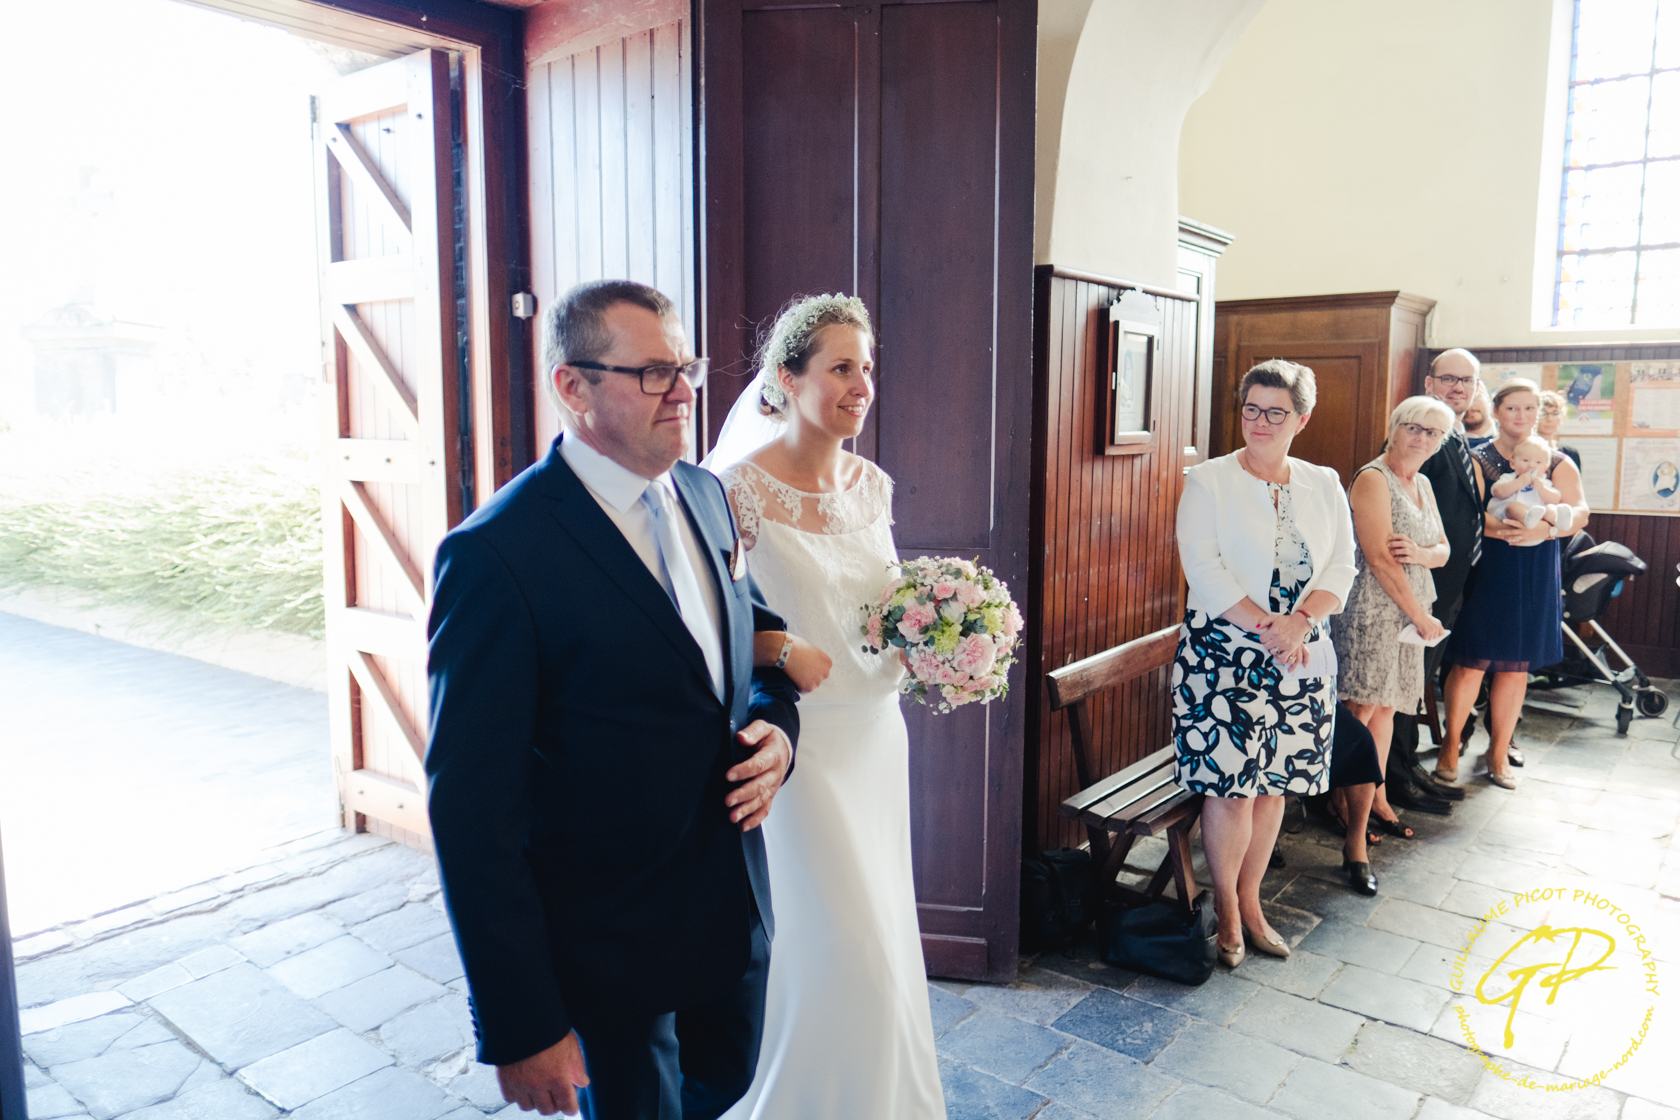 mariage-claire-fontaine-wicres-45-sur-151